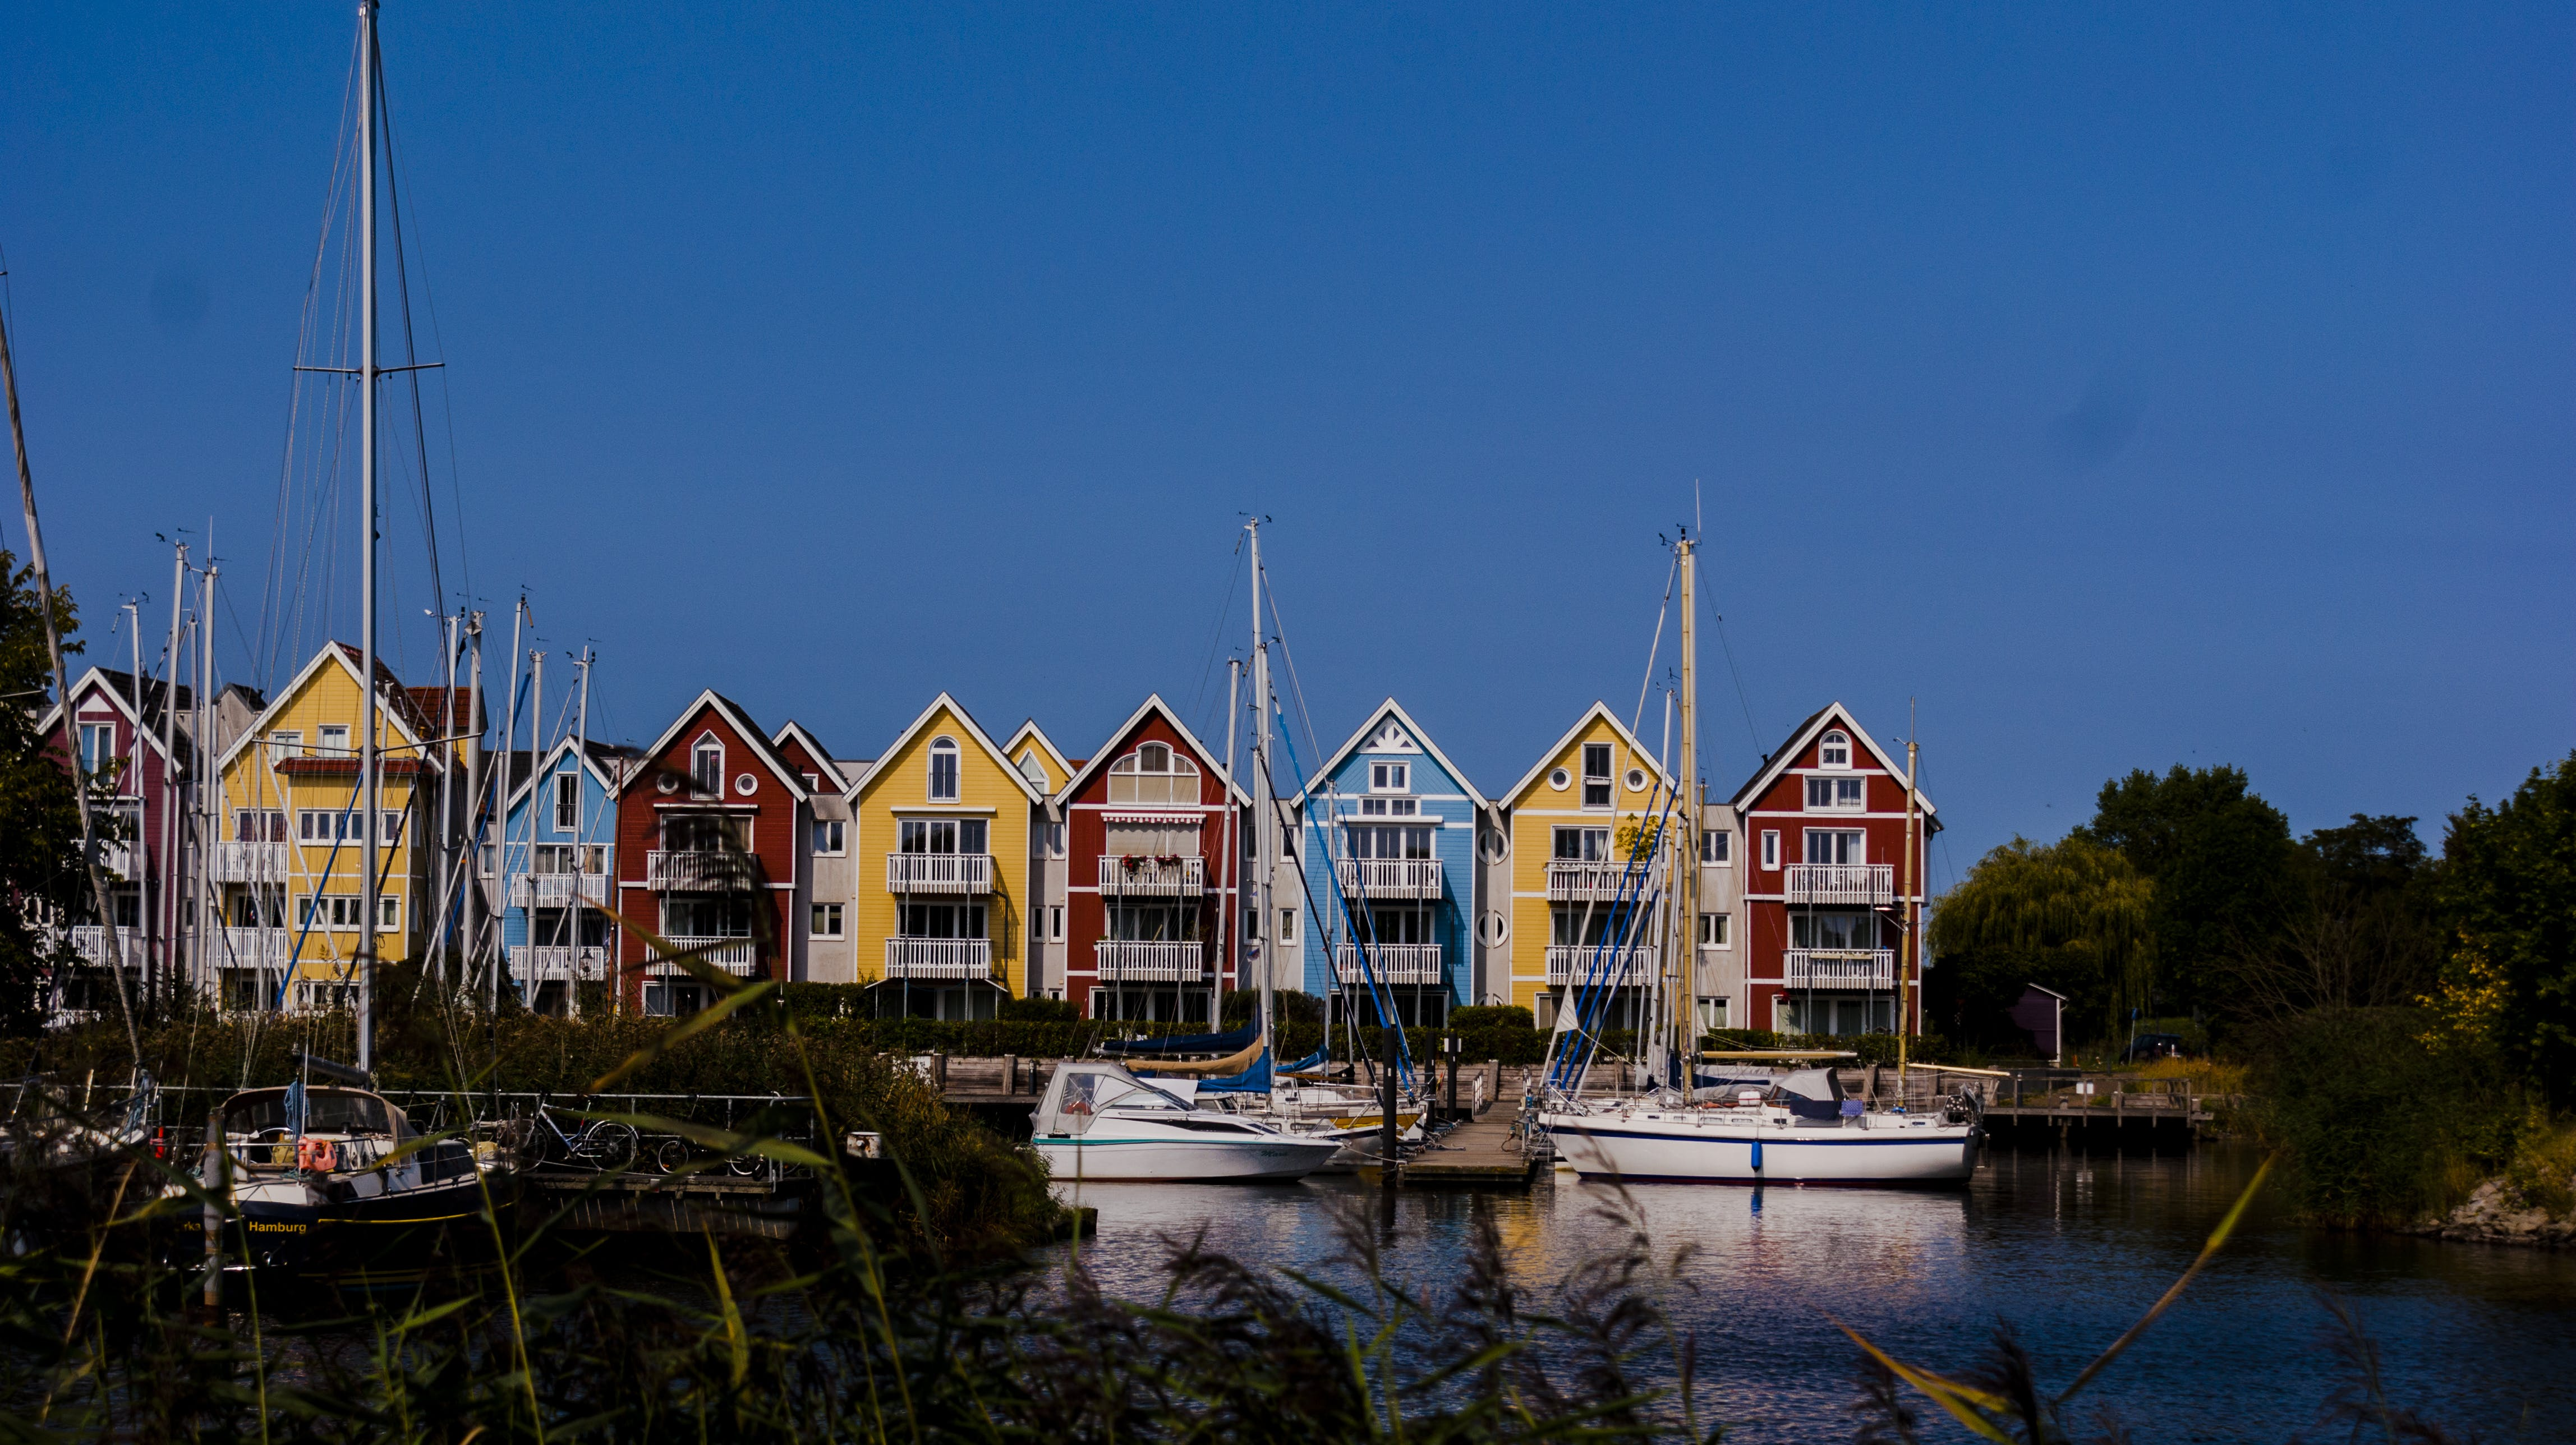 Free stock photo of boats, colorful houses, houses, nautical